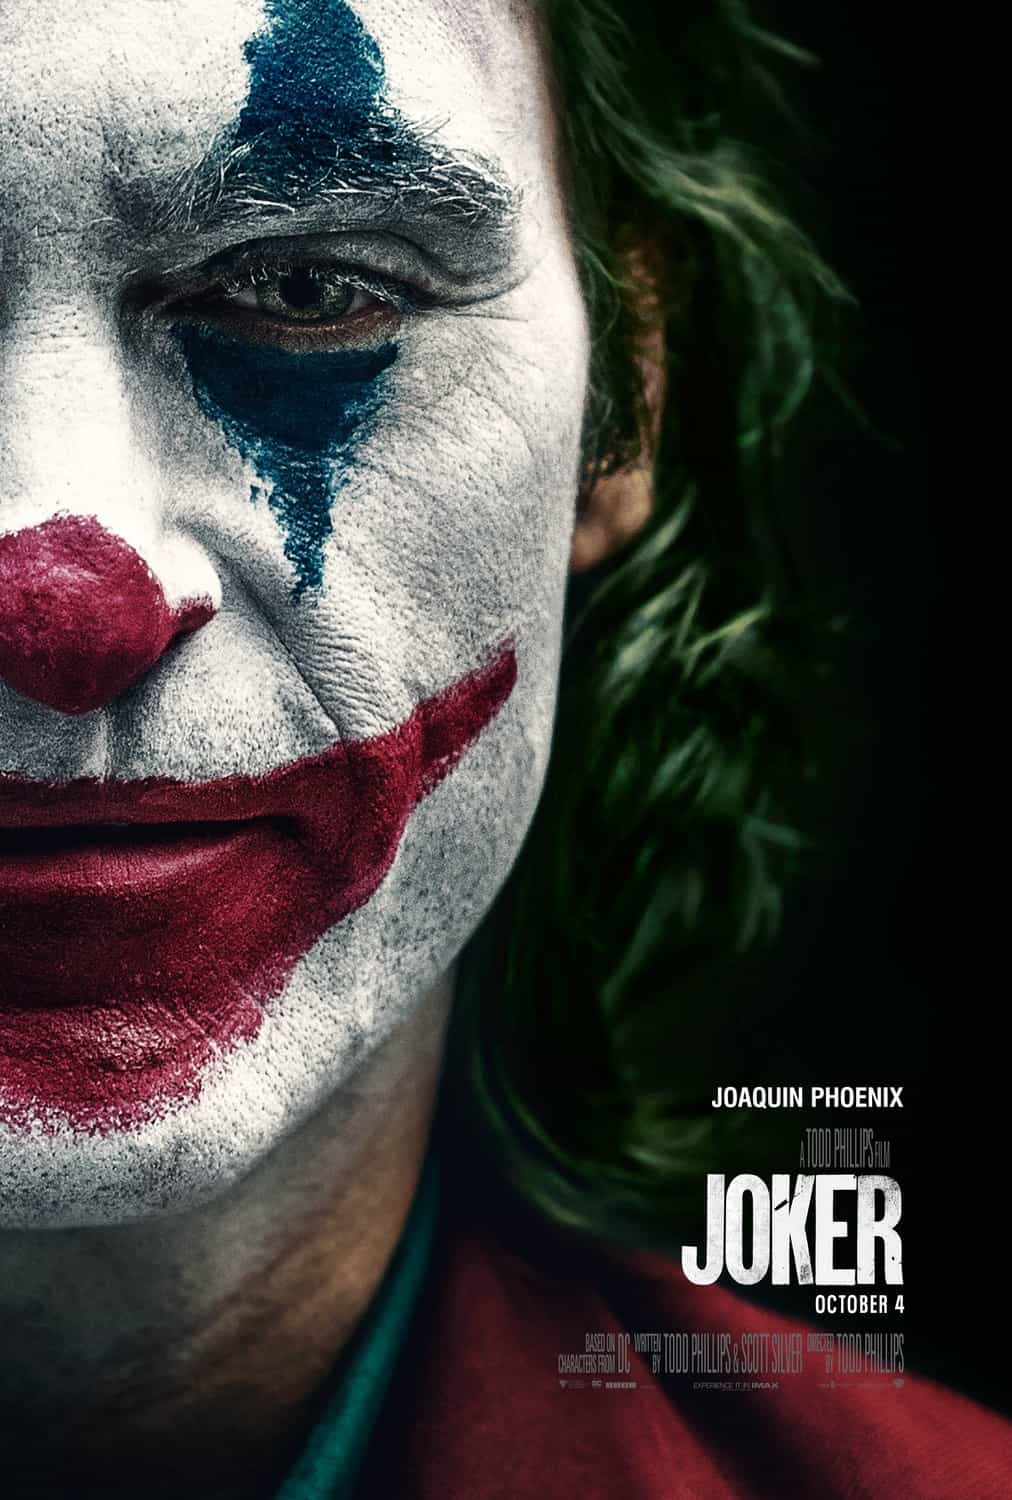 UK Box Office Analysis 4th - 6th October 2019:  Joker opens big in the UK with a 12 Million pound debut weekend while Judy settle for 2nd place